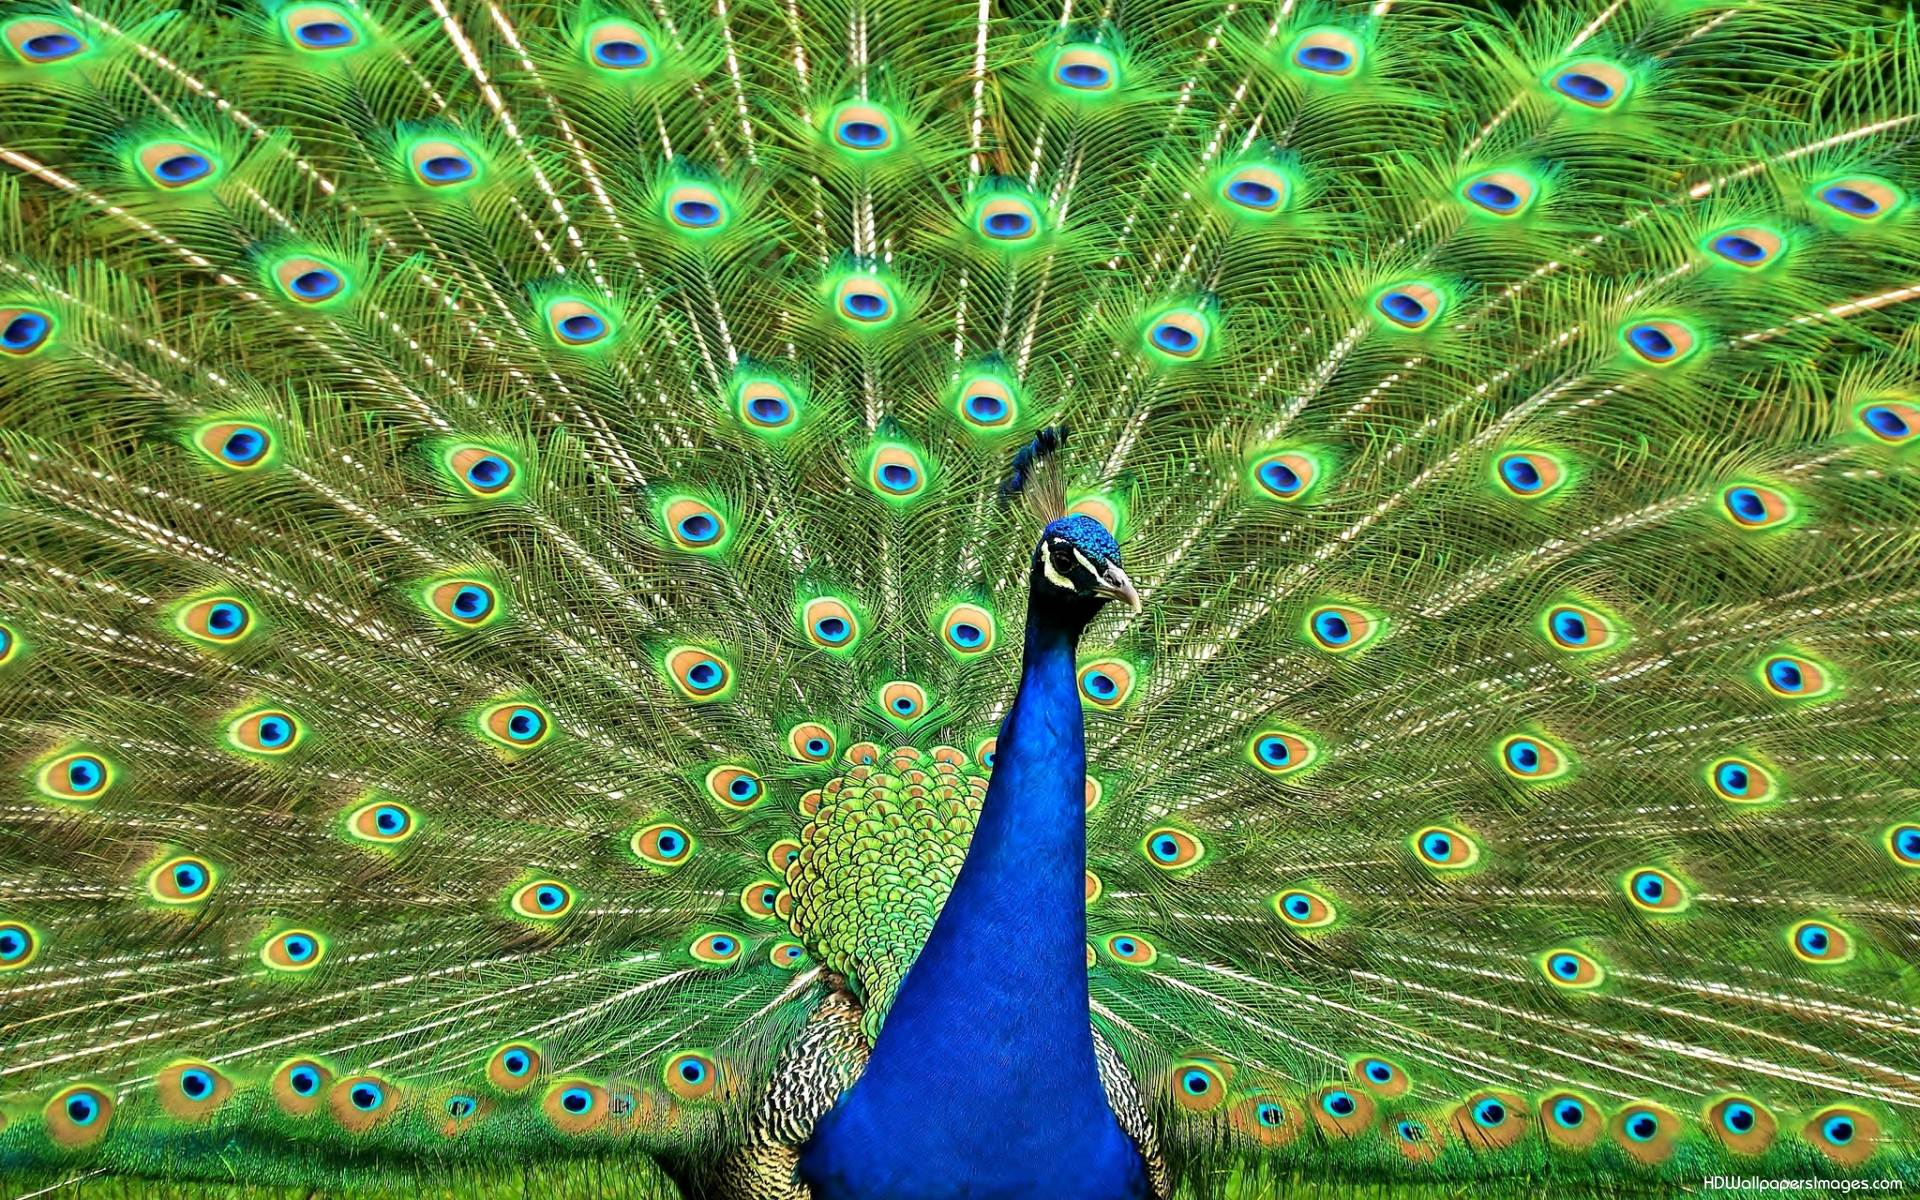 Wallpapers Of Peacock Feathers HD 2015